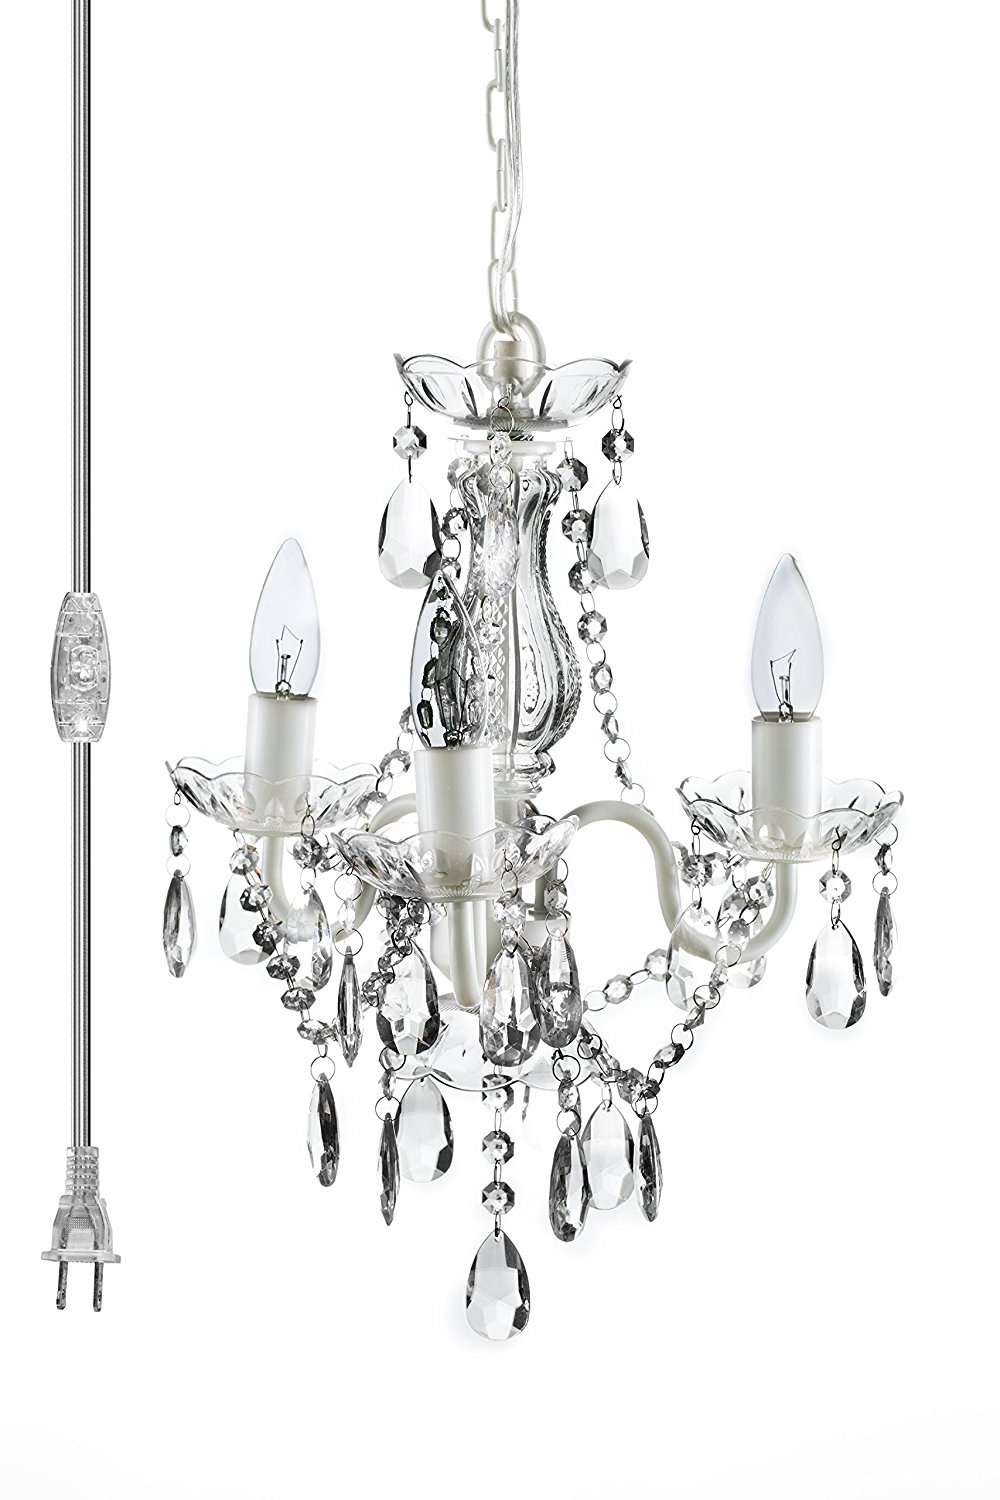 The Original Gypsy Color 3 Light Mini Plug In Crystal Chandelier For For Recent Crystal Chandeliers (View 4 of 15)